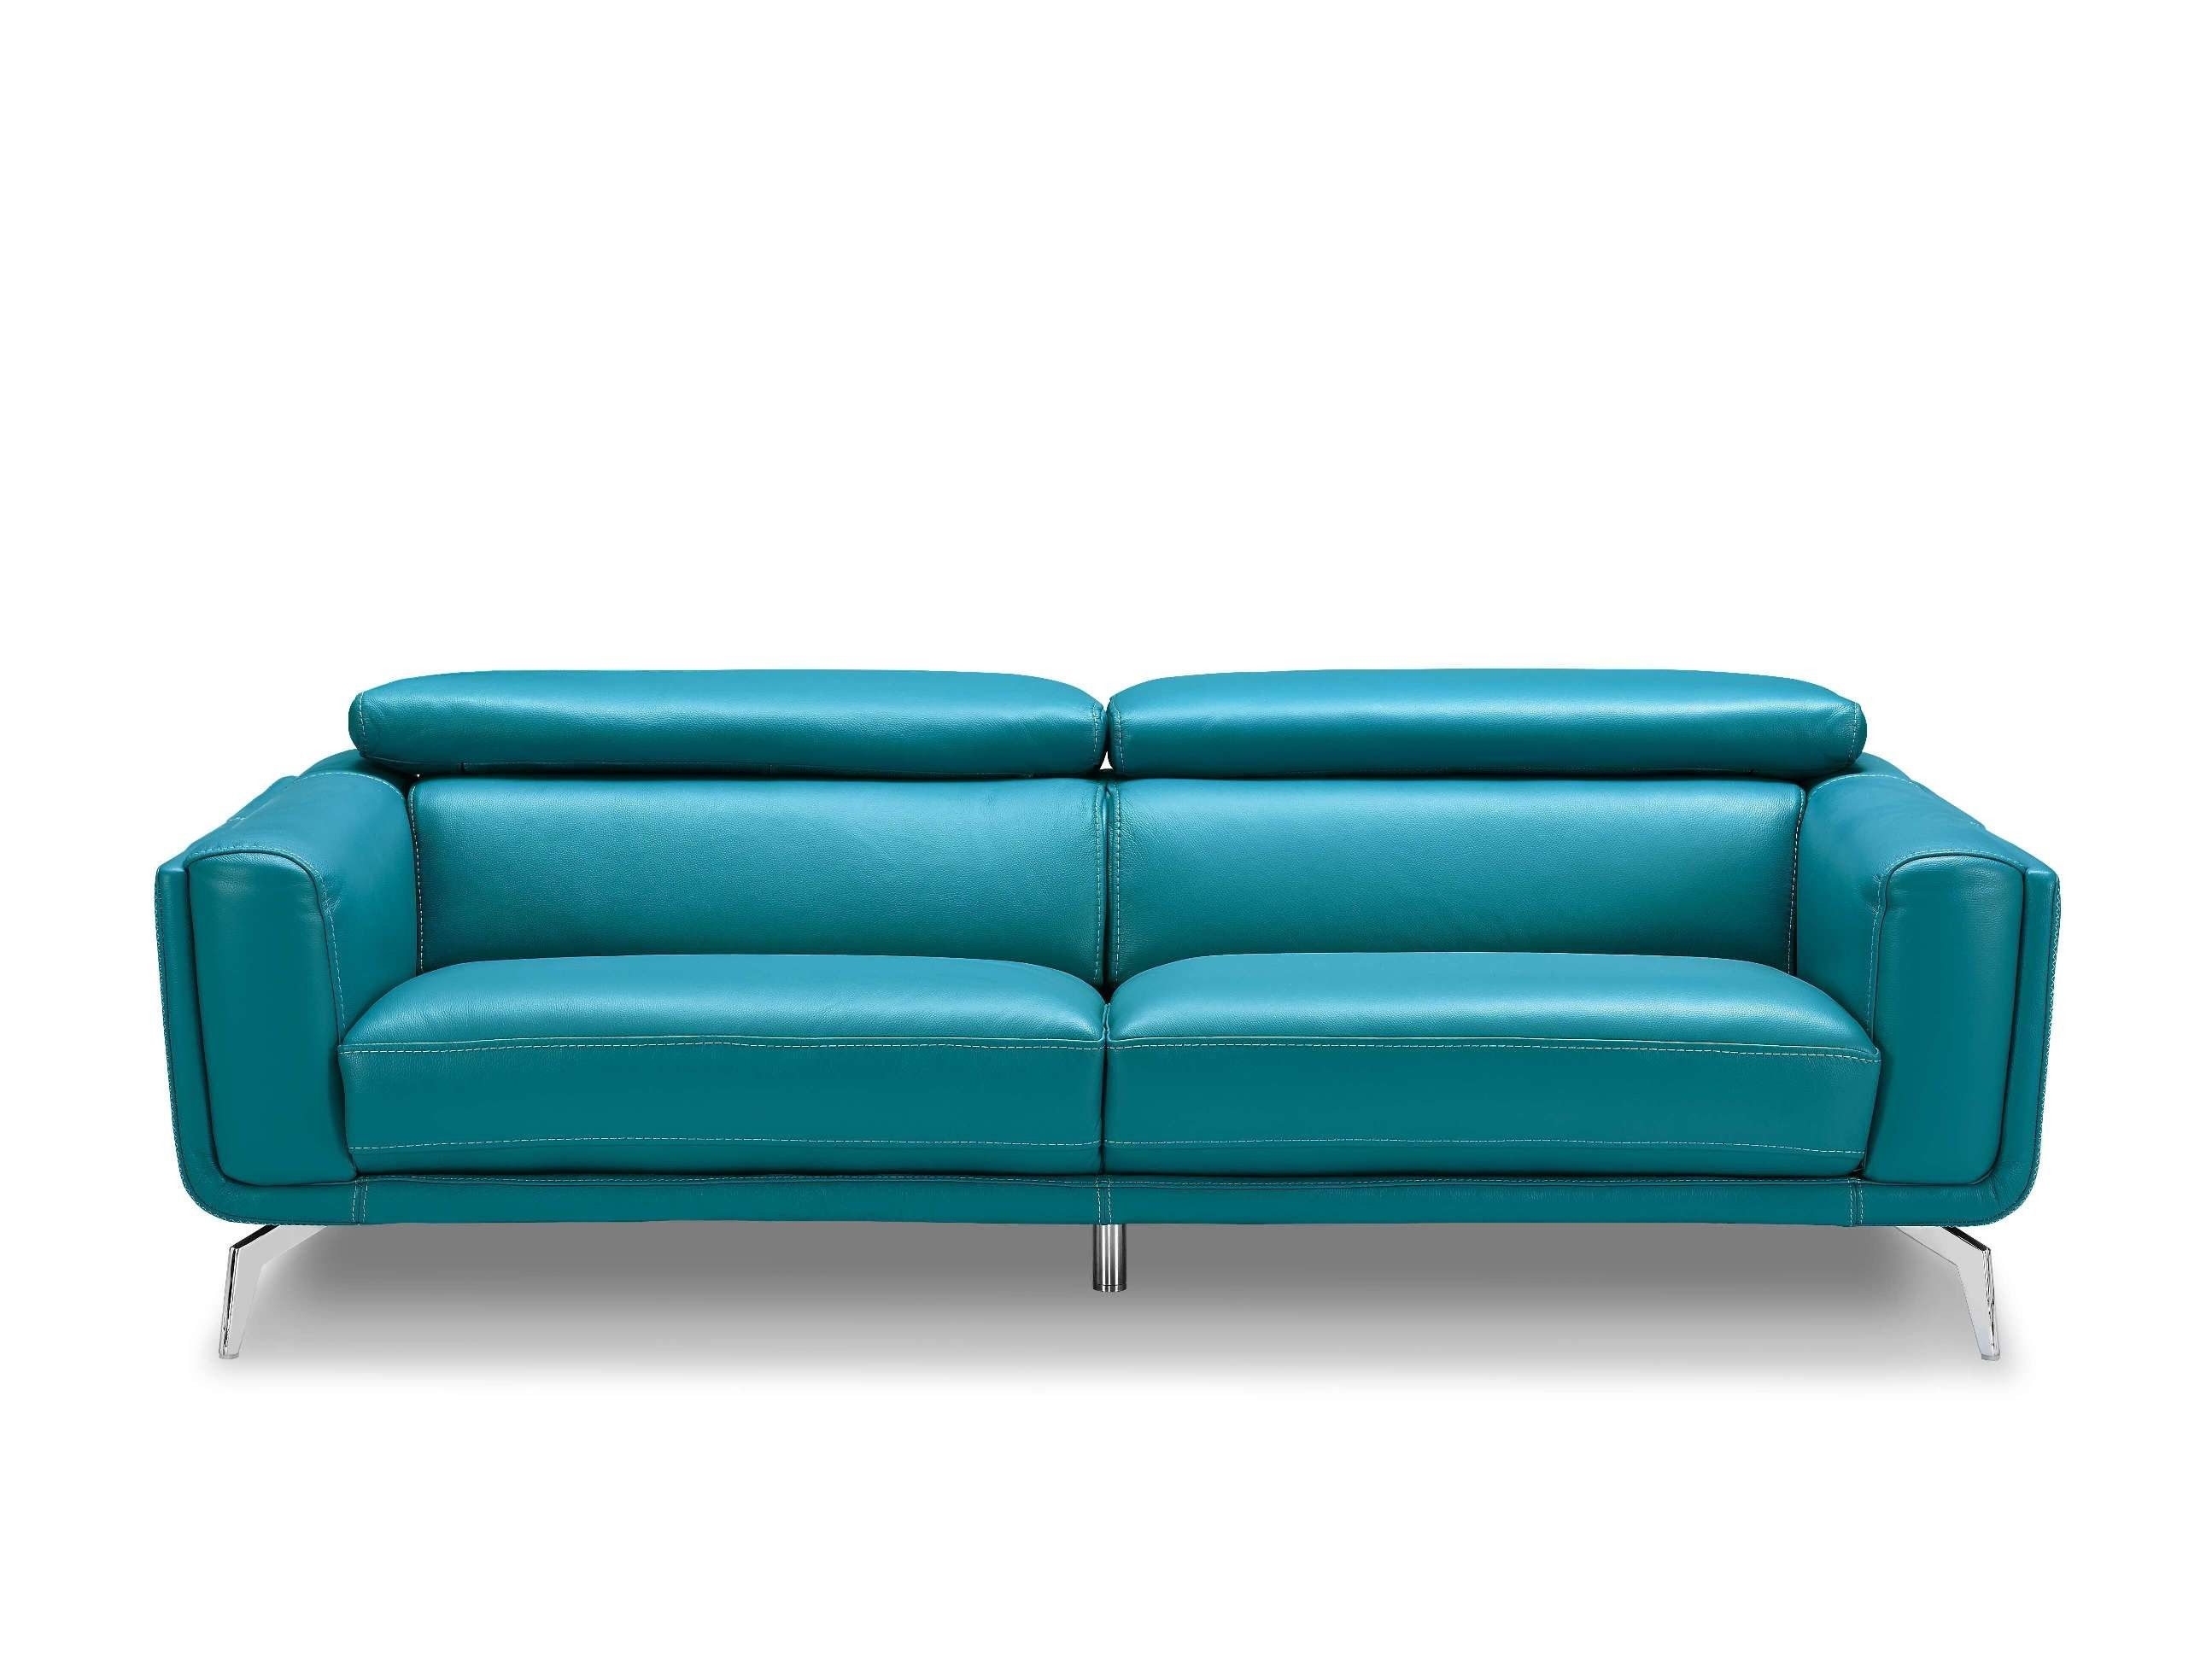 excellent small leather sofa image-Awesome Small Leather sofa Gallery